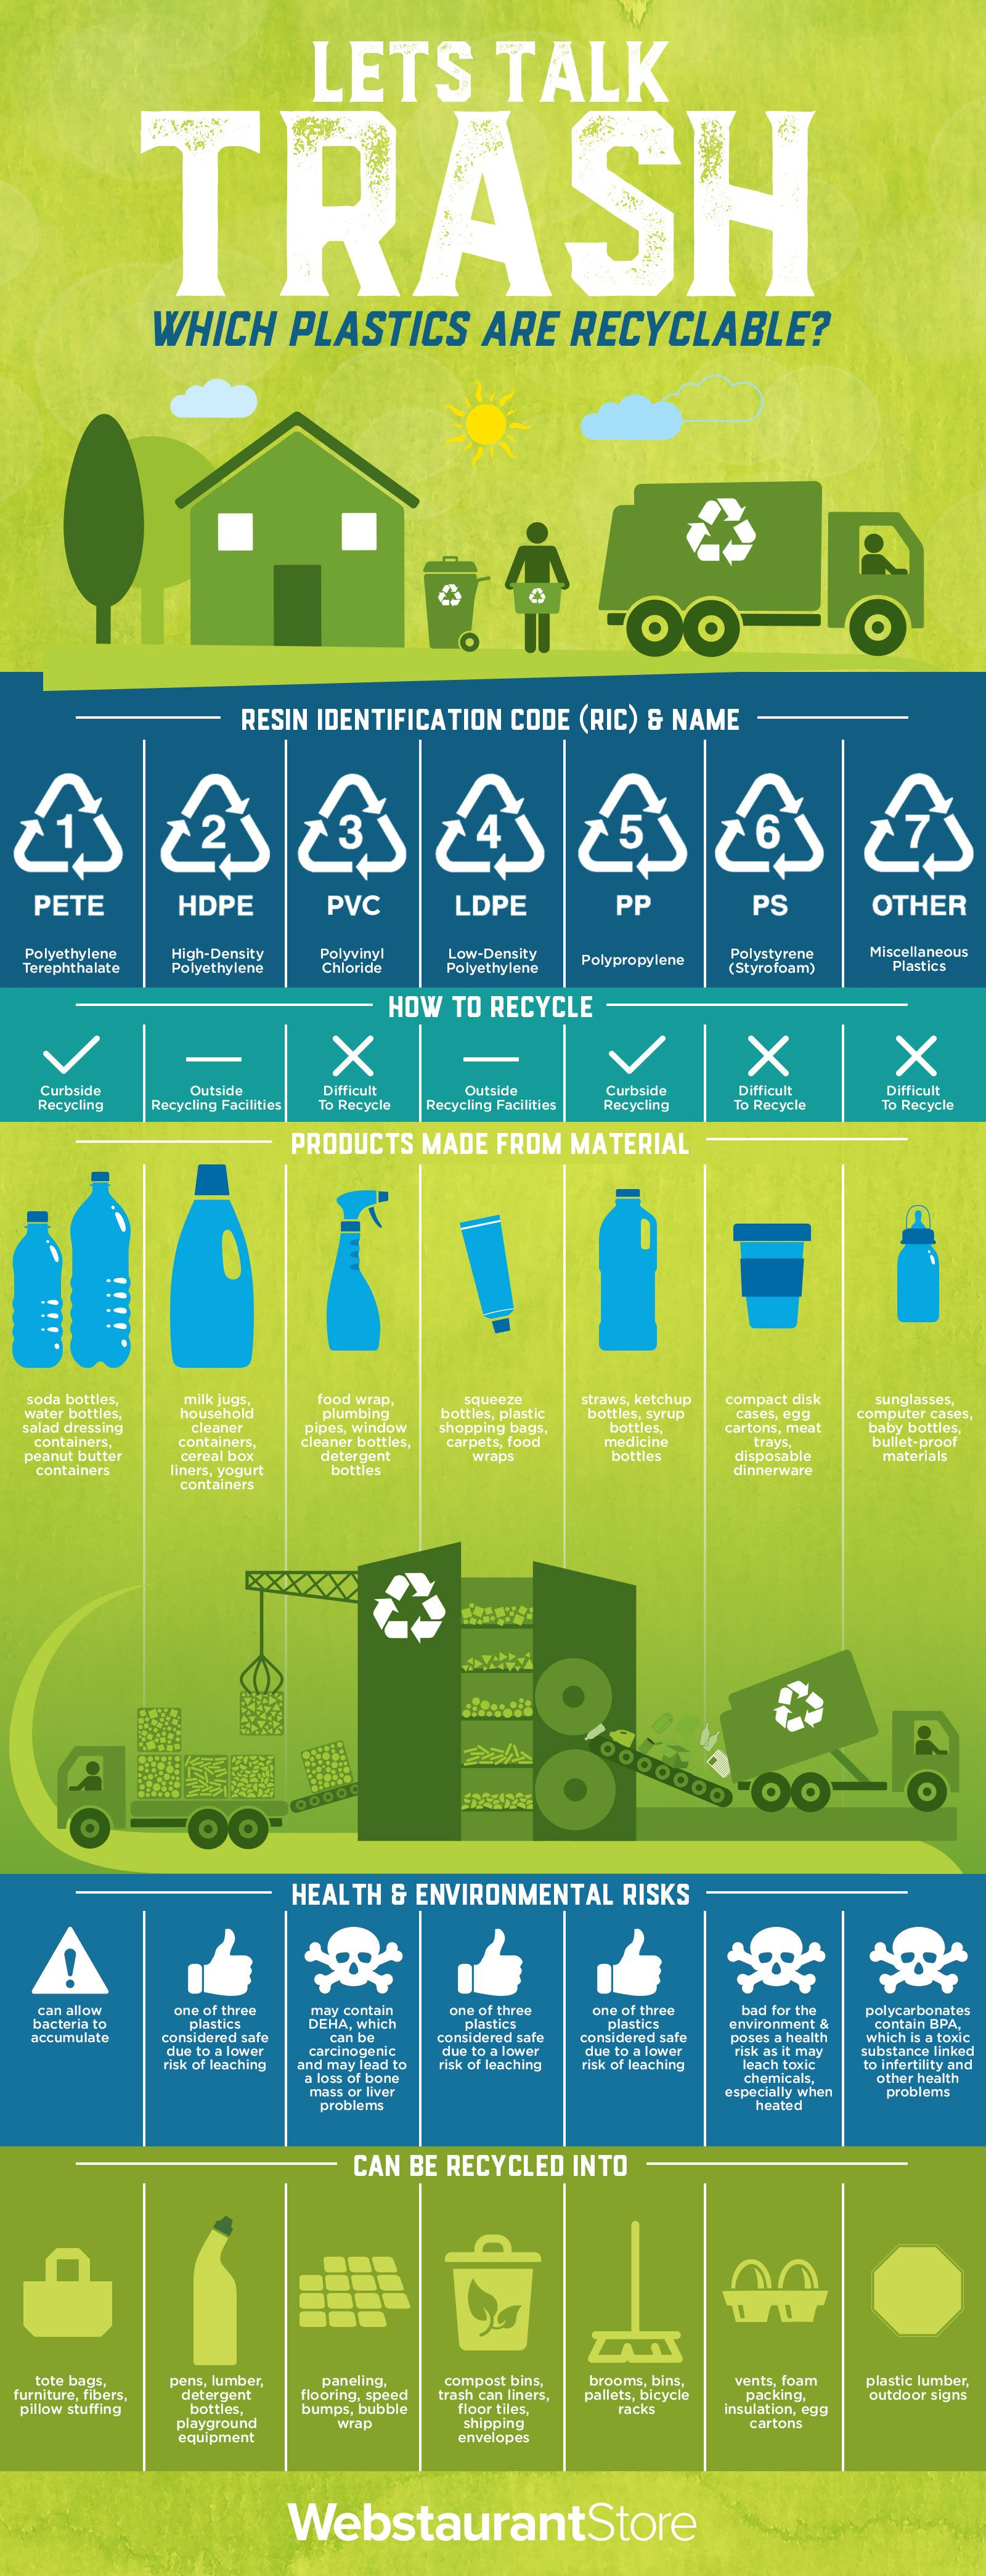 What Do Plastic Recycling Symbols Mean Plastic Recycling Symbols